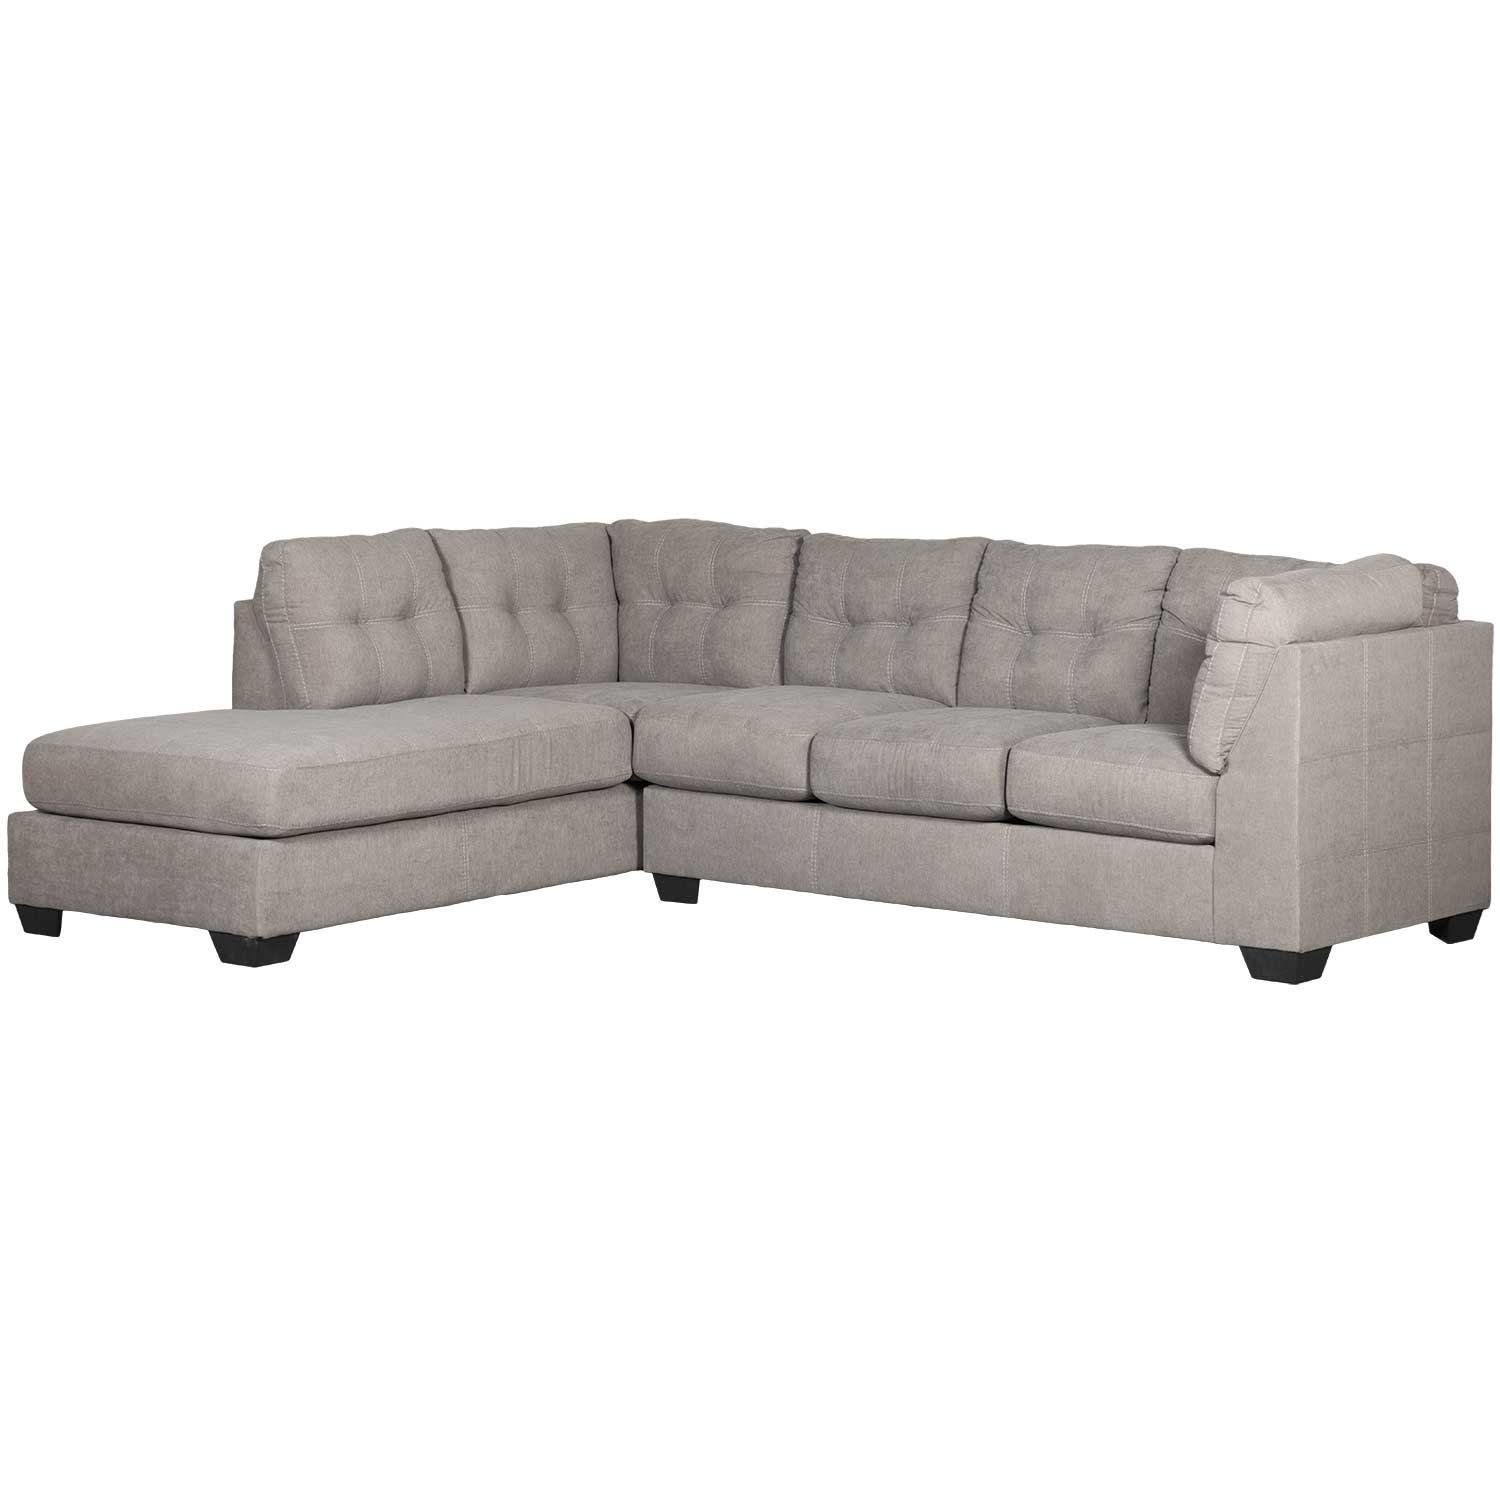 Maier Charcoal 2 Piece Sectional With Laf Chaise | 4520016/67 With Regard To Arrowmask 2 Piece Sectionals With Sleeper & Left Facing Chaise (View 6 of 25)